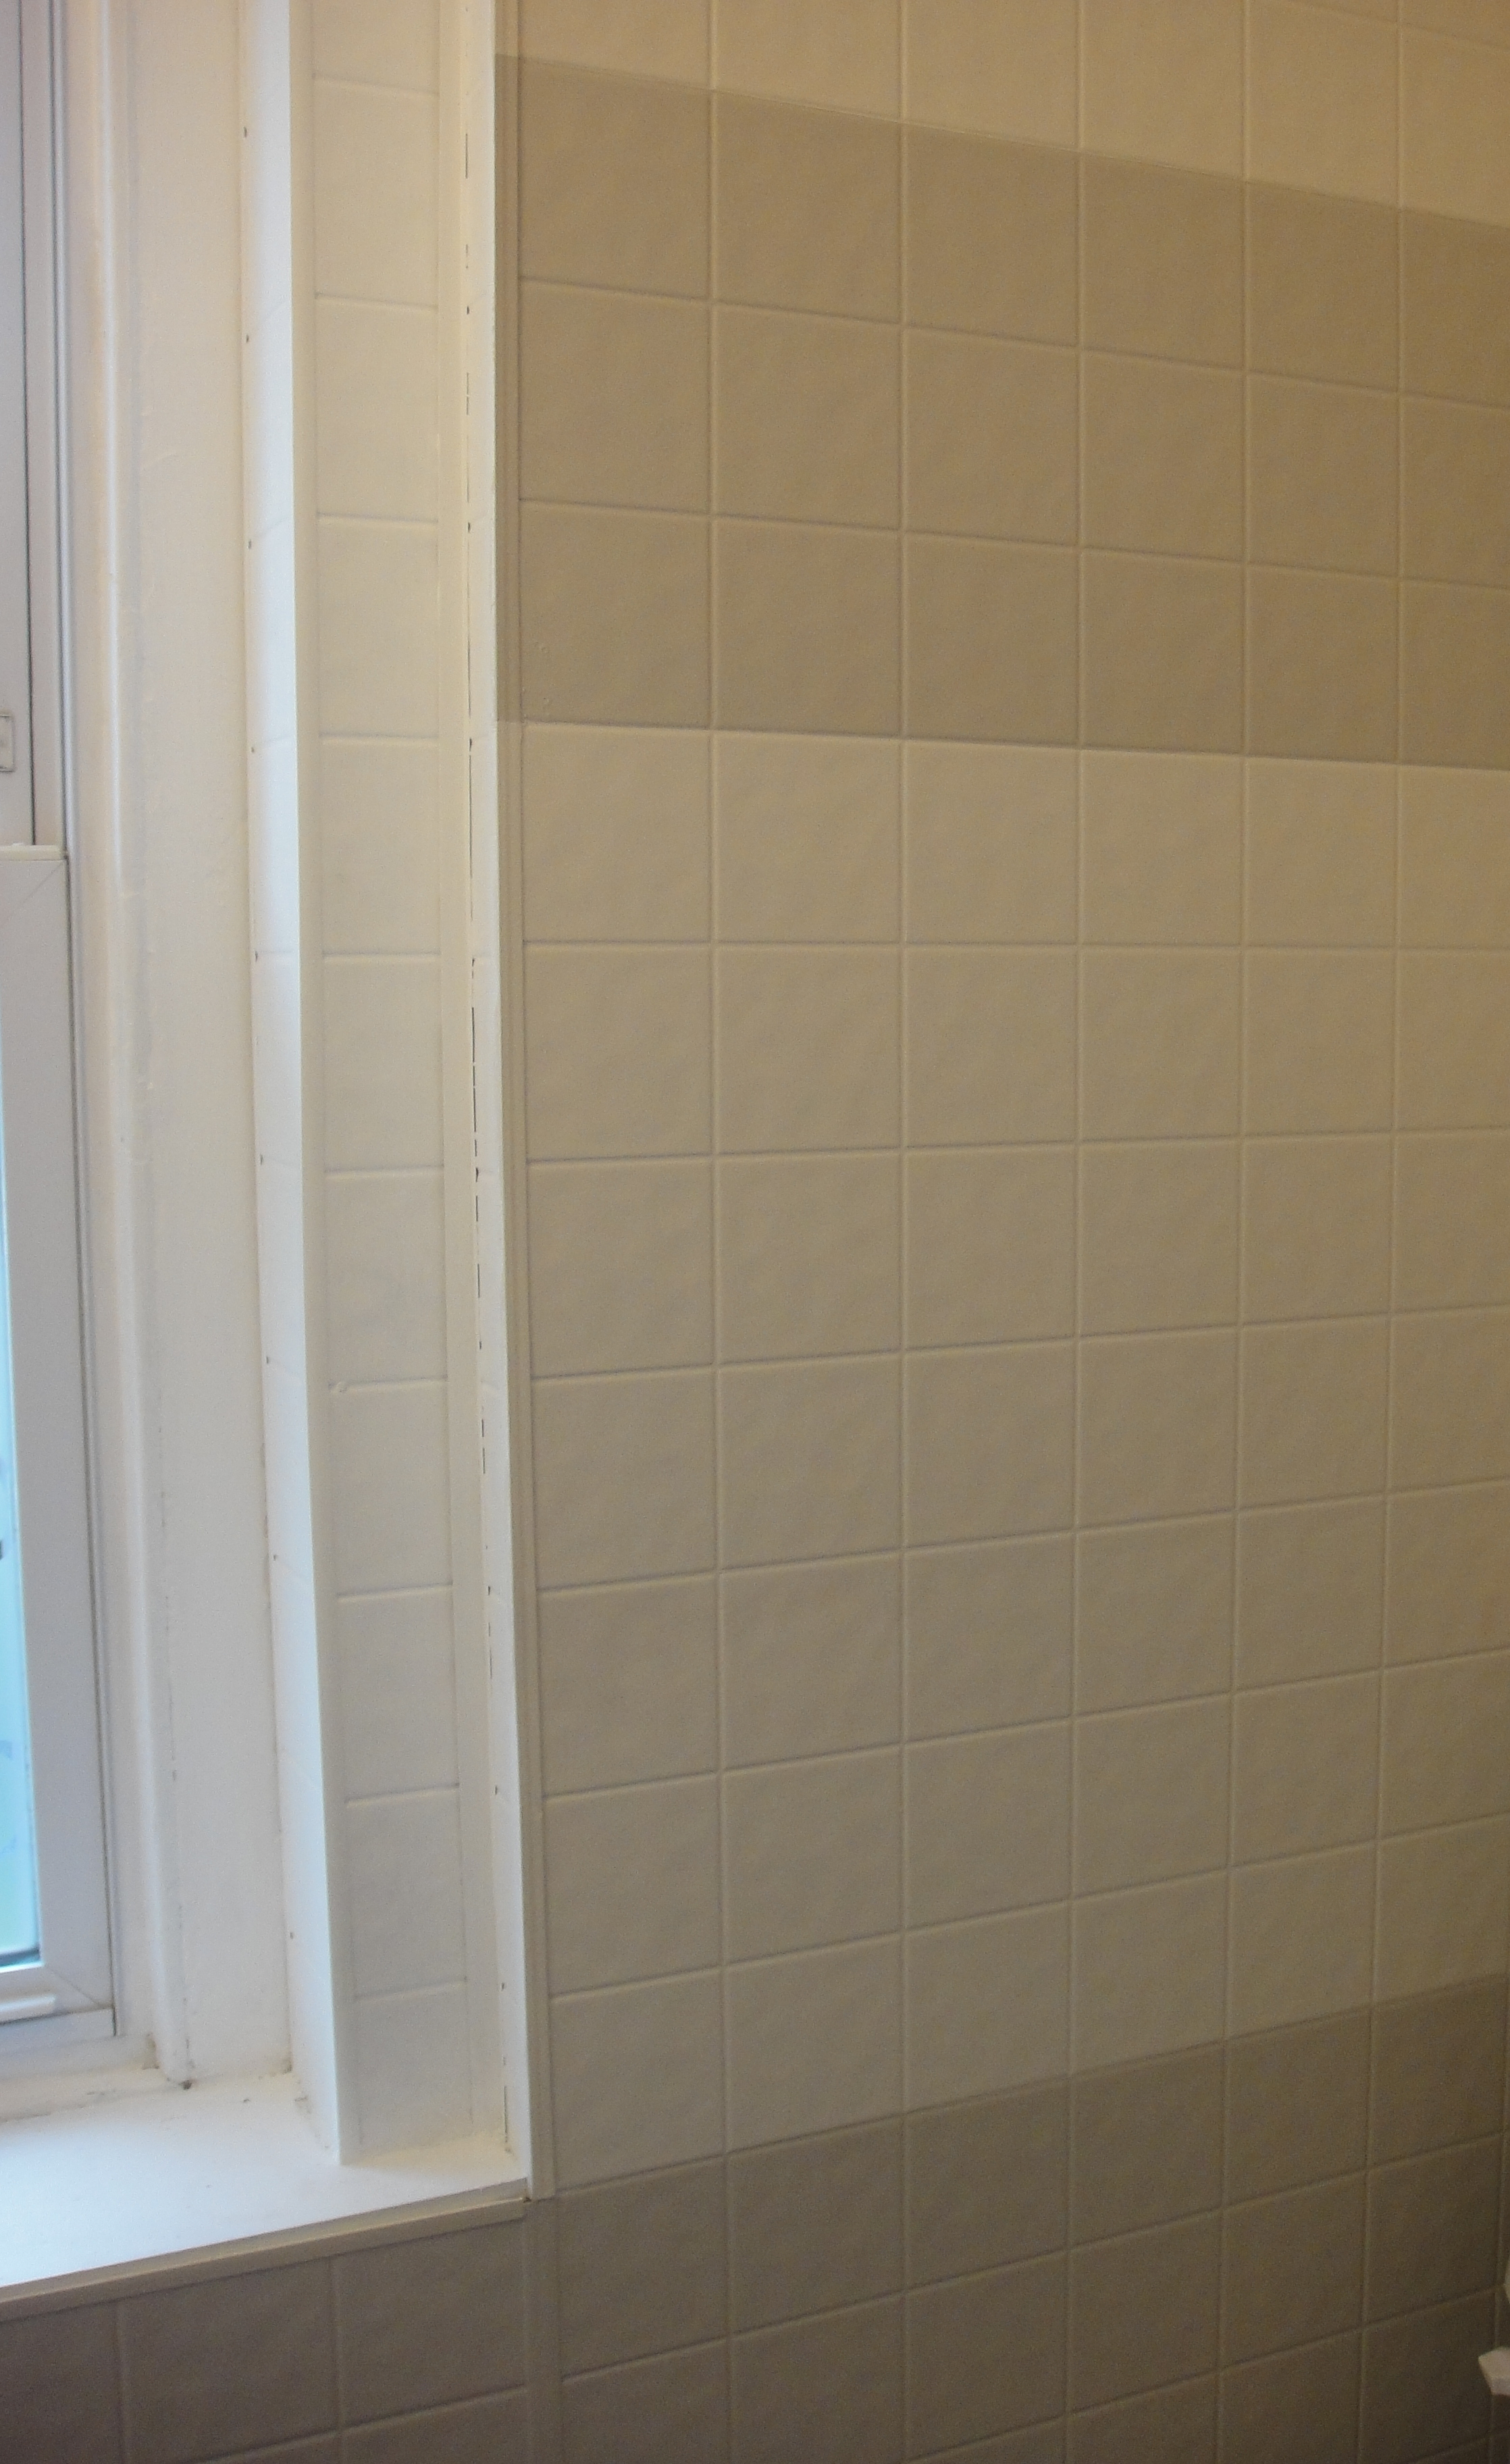 Bathroom Mini-Renovation {Part 4: Painting Tile Board} | So Pretty ...